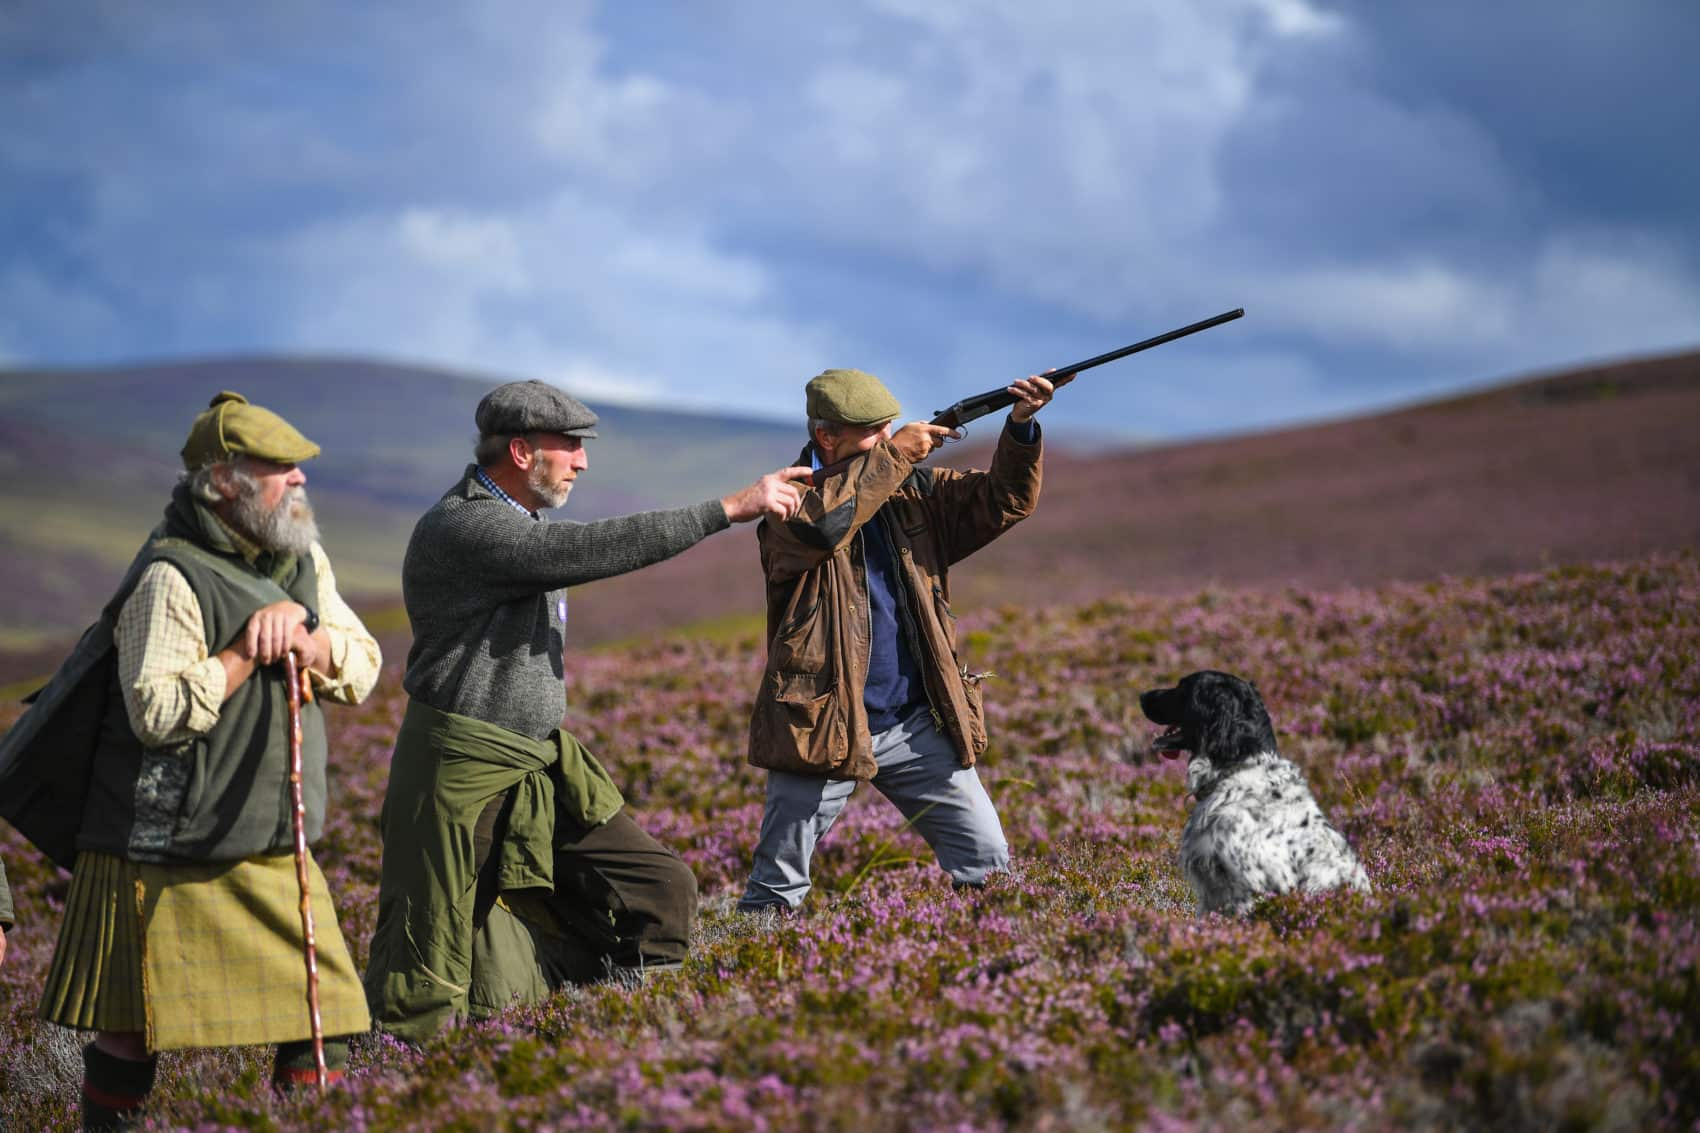 Shooting at Simonstone Hall Hotel - Grouse Shooting, Pheasant Shooting, Clay Pigeon Shooting or Film and Movies Shoots in Hawes, North Yorkshire Dales